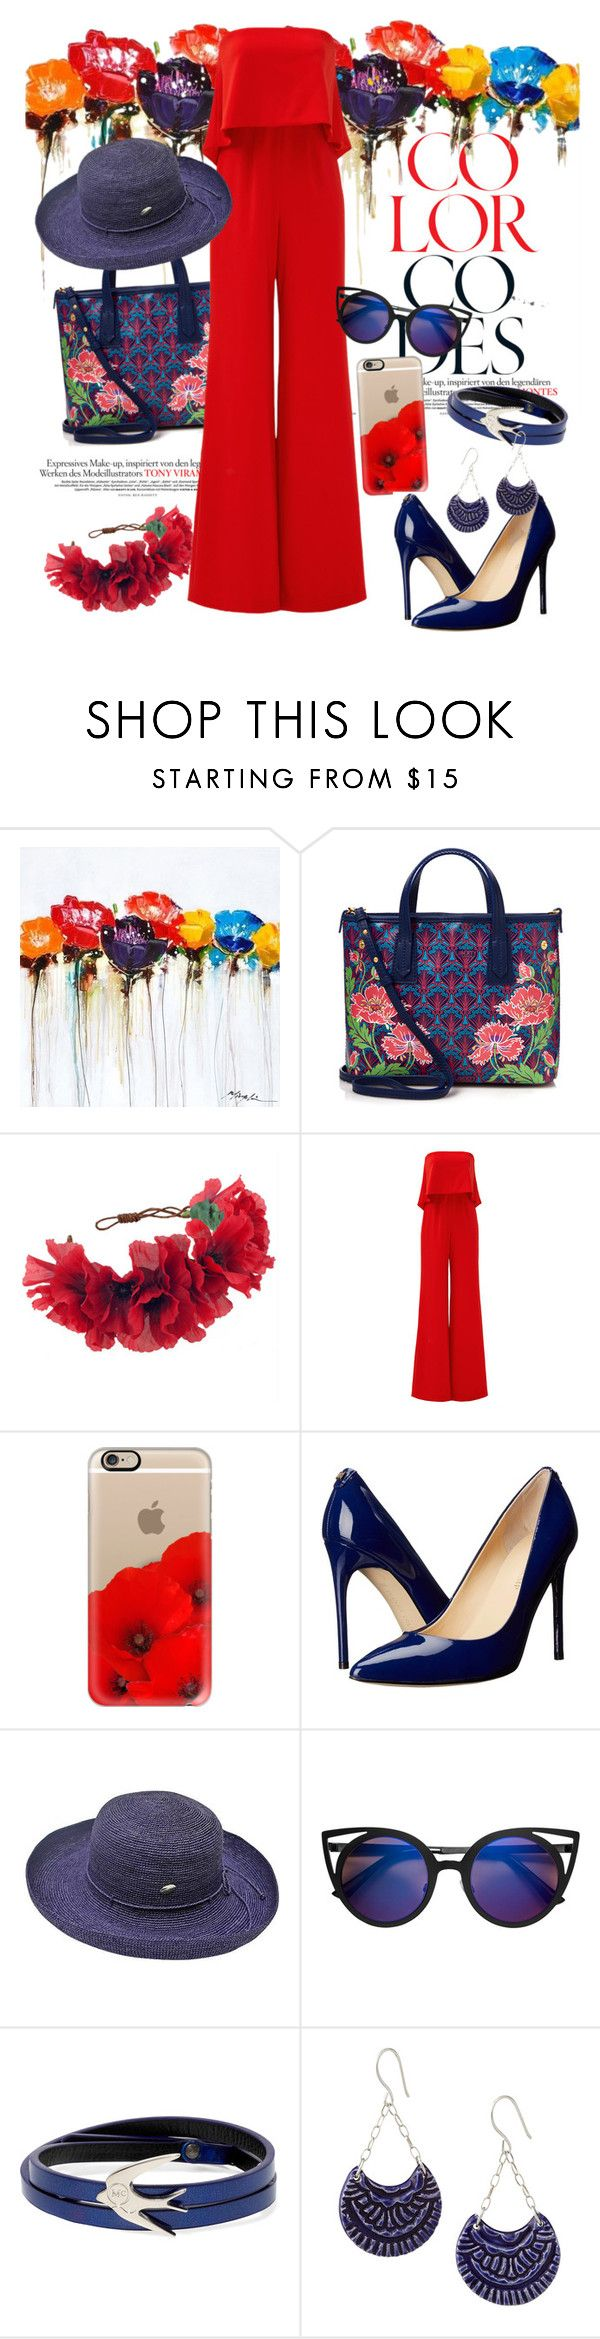 """Poppy rainbow"" by huxmay ❤ liked on Polyvore featuring Yosemite Home Décor, Liberty, Rock 'N Rose, Jay Godfrey, Casetify, Ivanka Trump, McQ by Alexander McQueen and sleevelessjumpsuits"